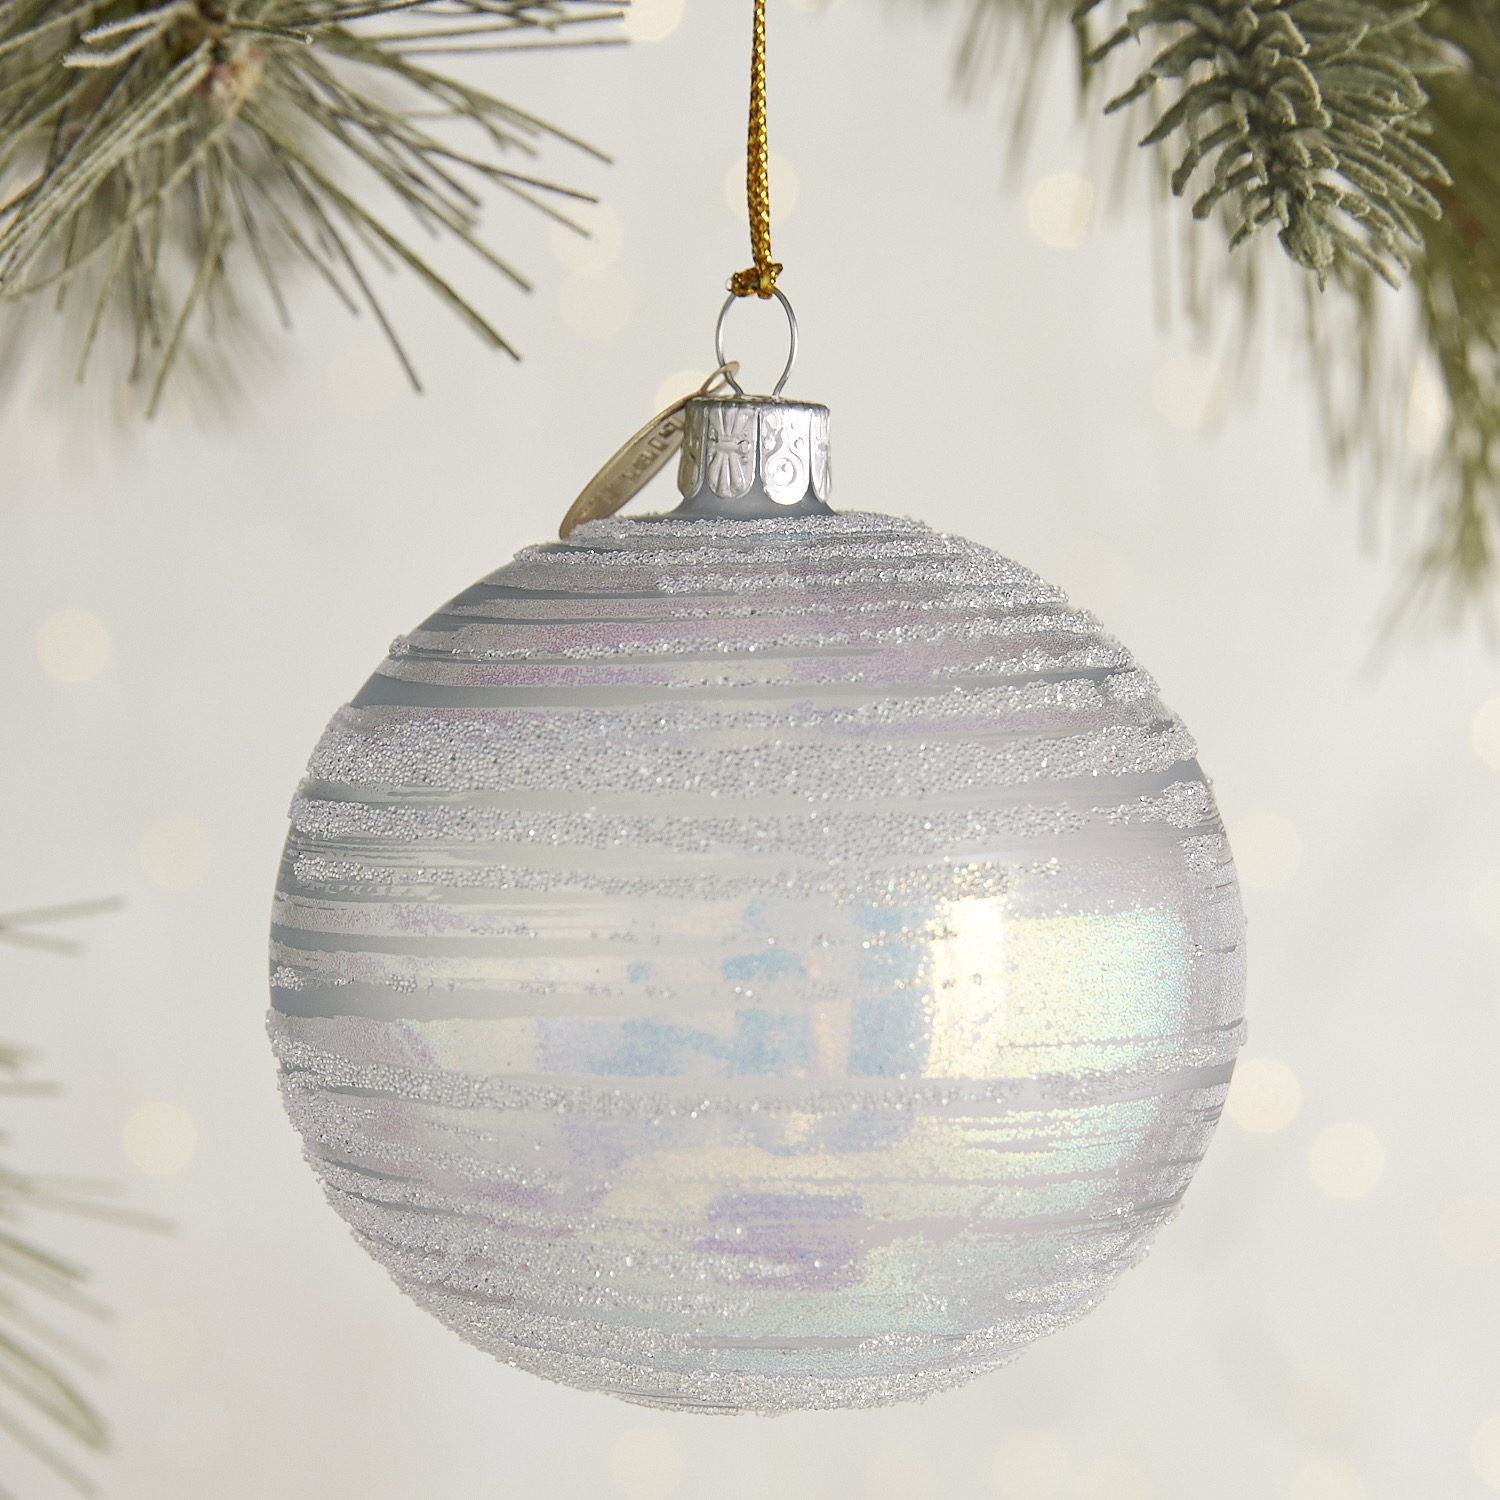 European Glass Striped Iridescent Ornament